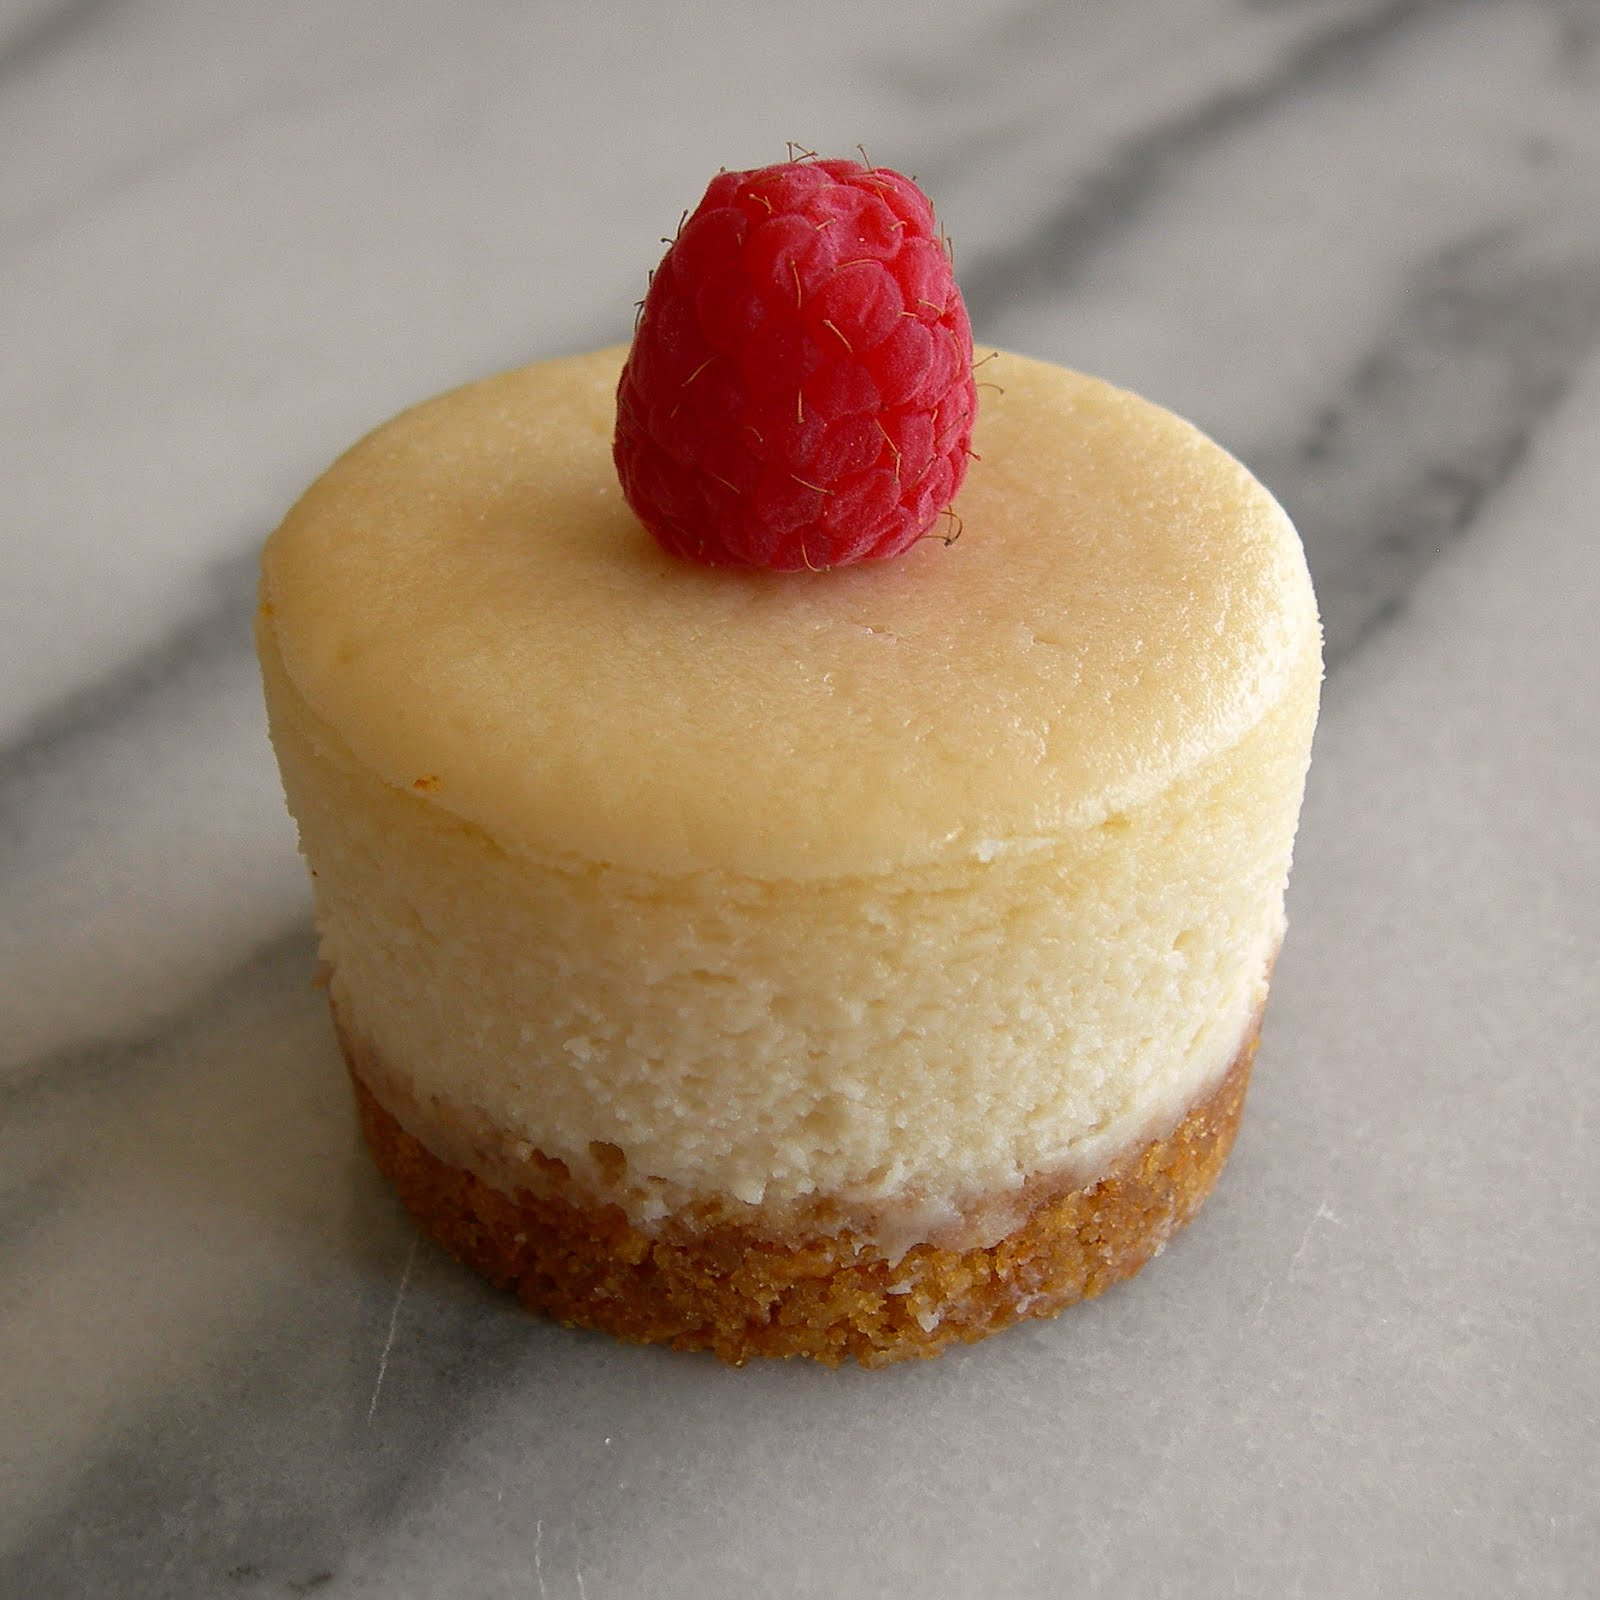 mini cheesecake is! I love that it's possible to make mini cheesecakes ...